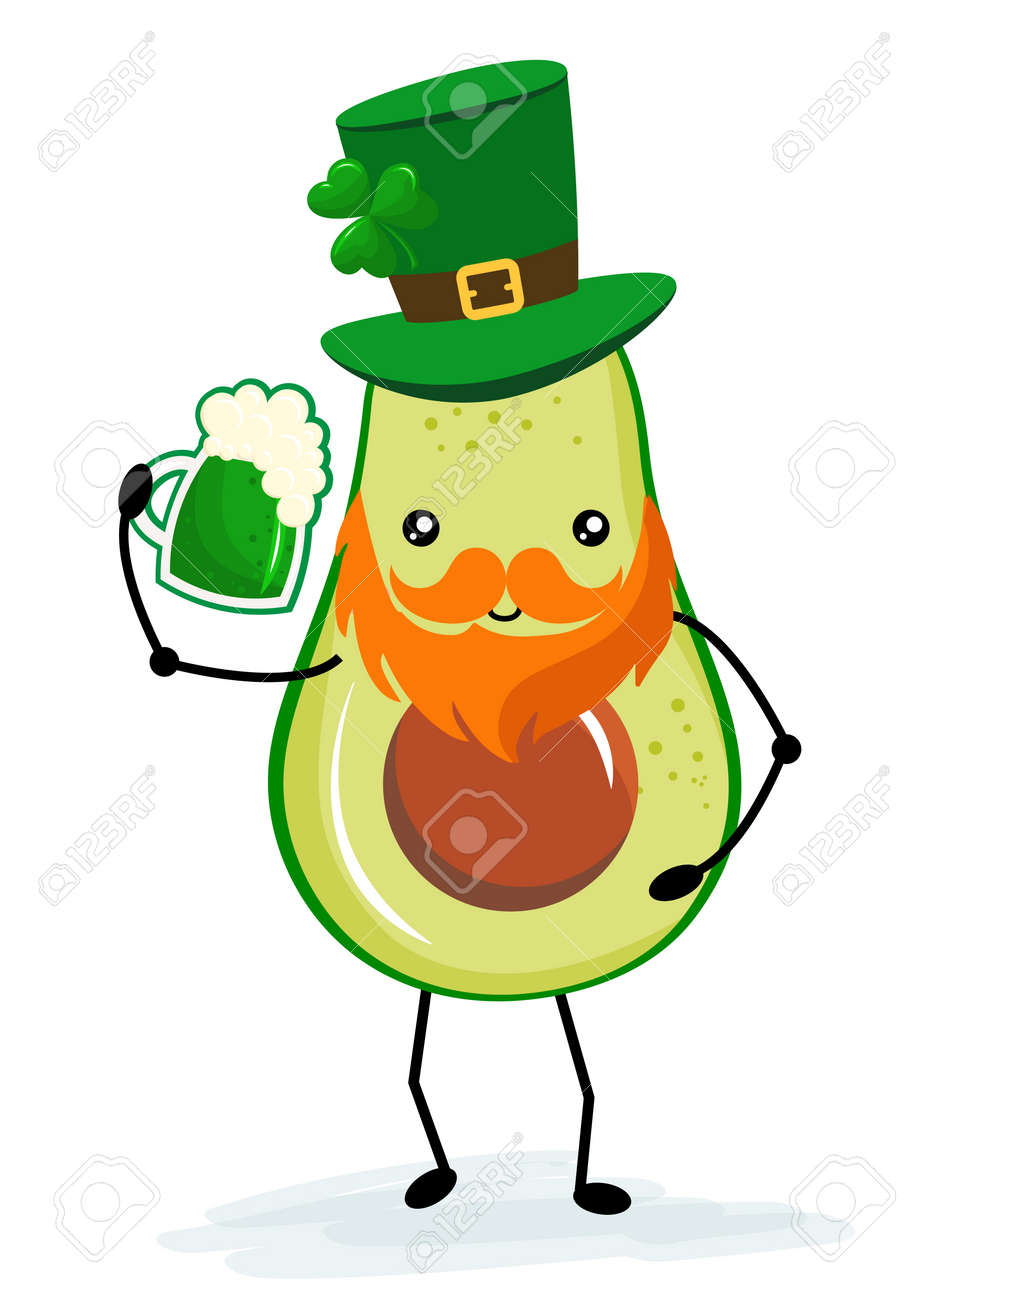 Leprechaun avocado with beer - funny St Patrik's Day kawaii character design with green avocado on white background. Good for posters, flyers, t-shirts, cards, invitations, stickers, banners, gifts. - 165833260